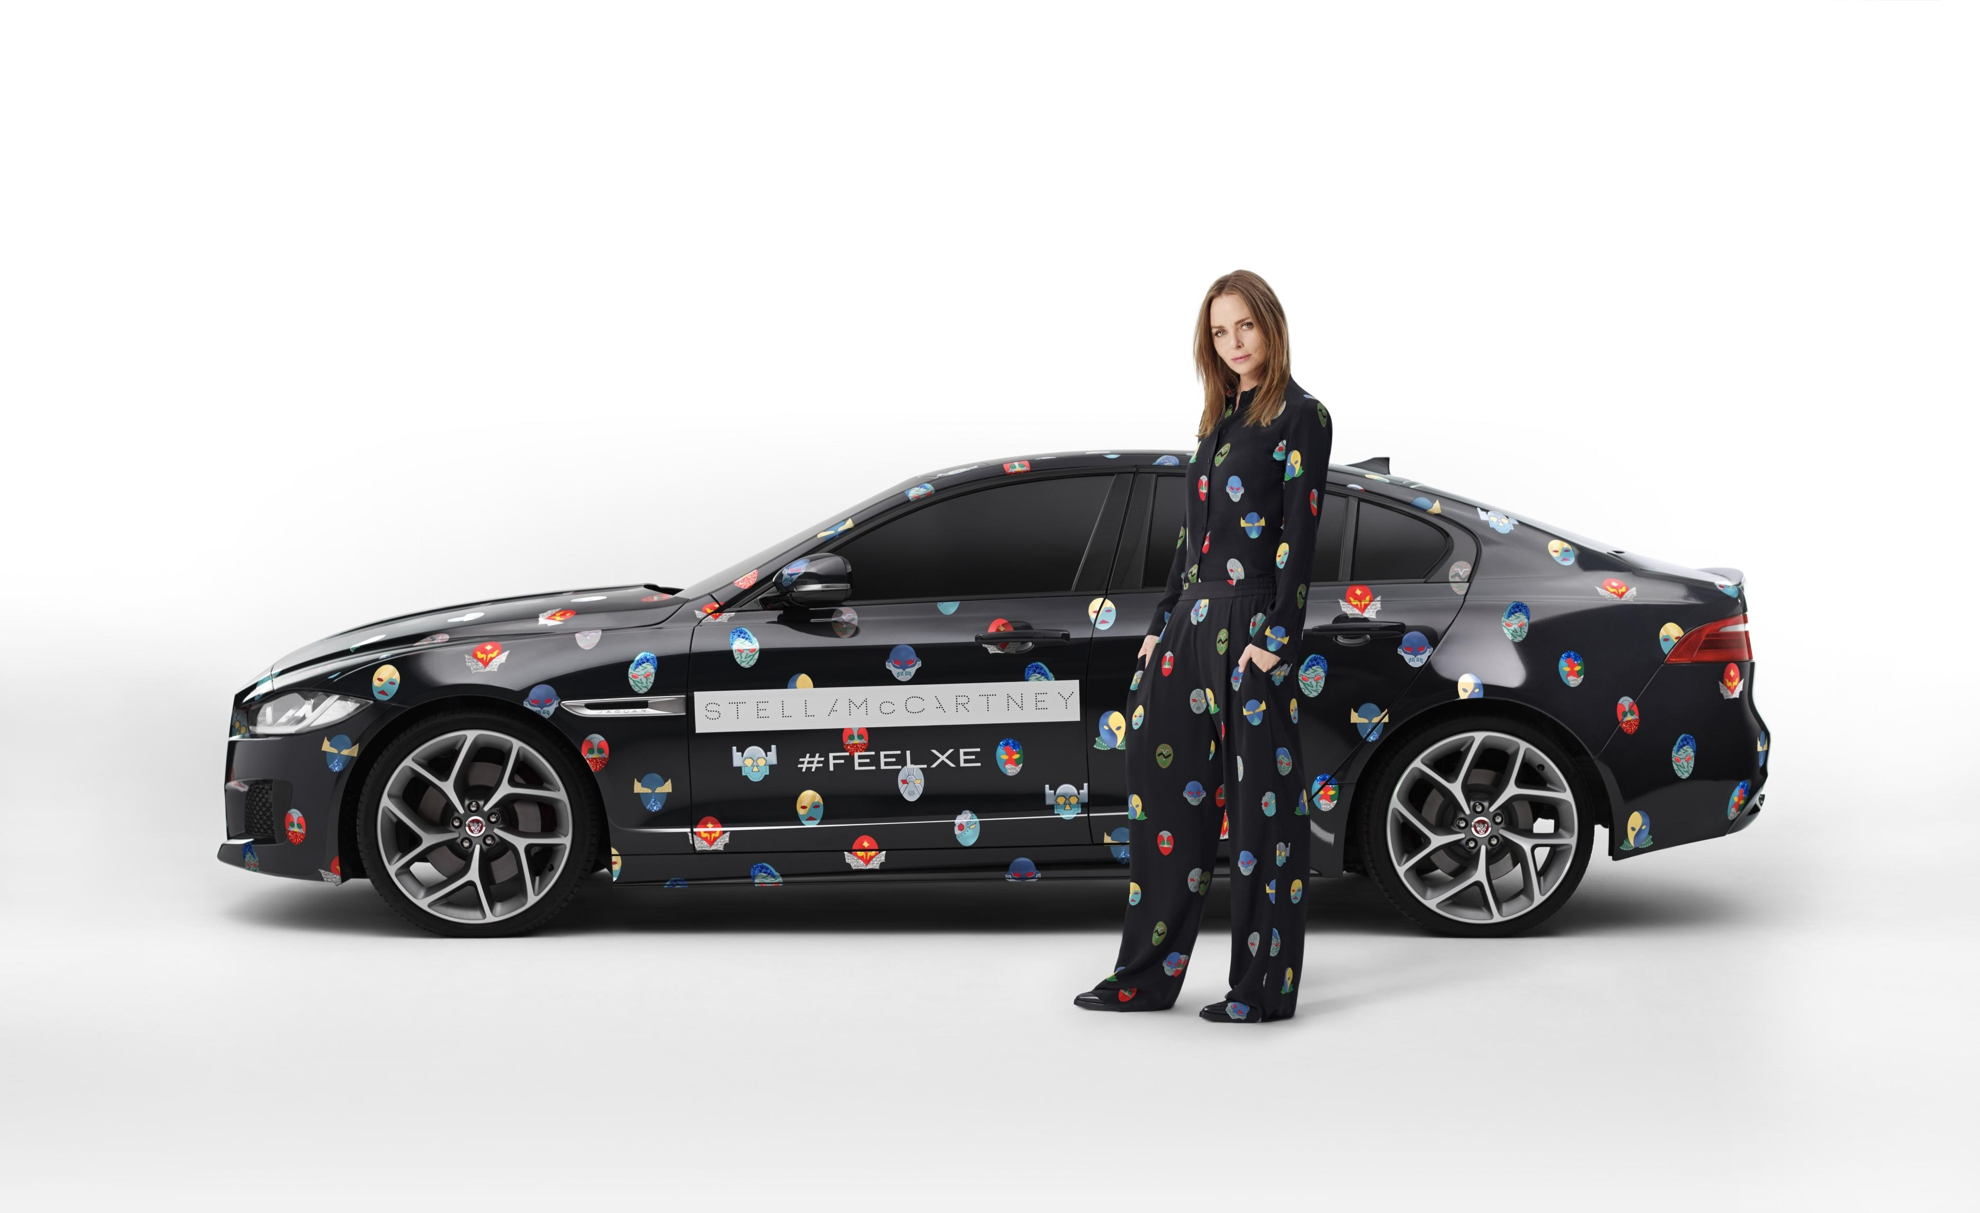 jaguar superhero revealed for paris motor show. Black Bedroom Furniture Sets. Home Design Ideas